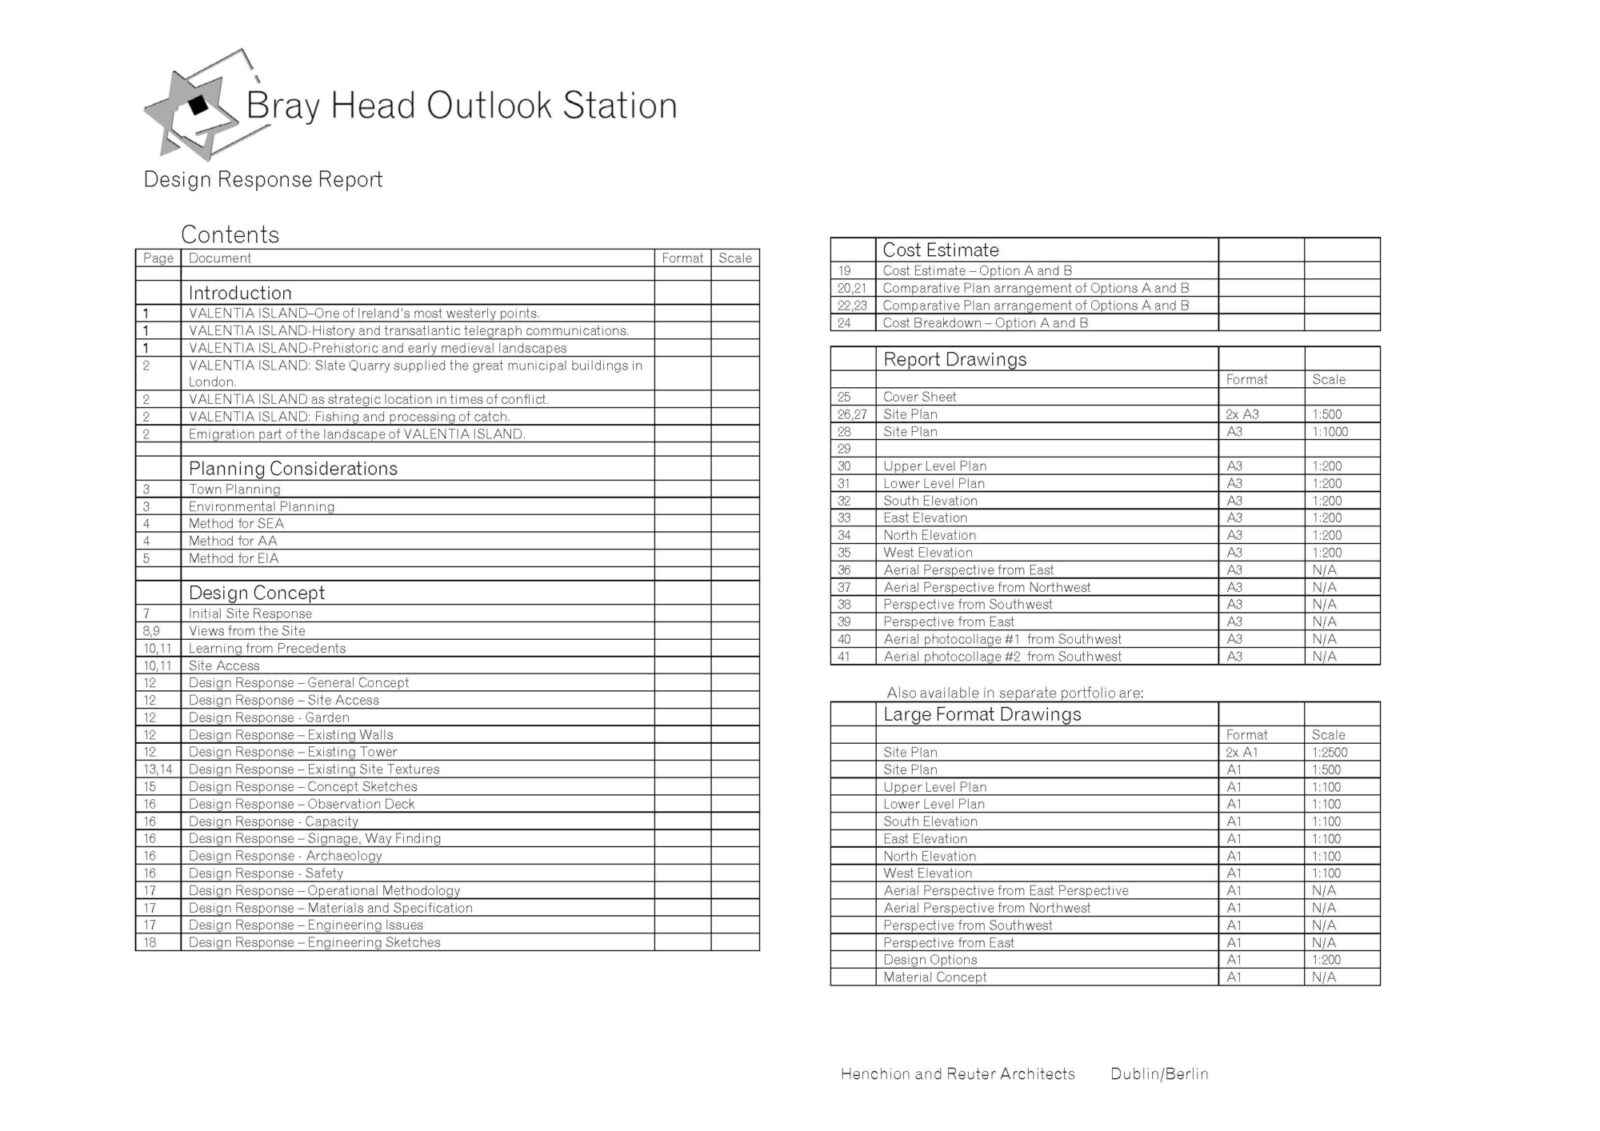 Hra Final Design Response Report Incl Cost Estimate To Be Printed A3 Doublesided Colour Page 04